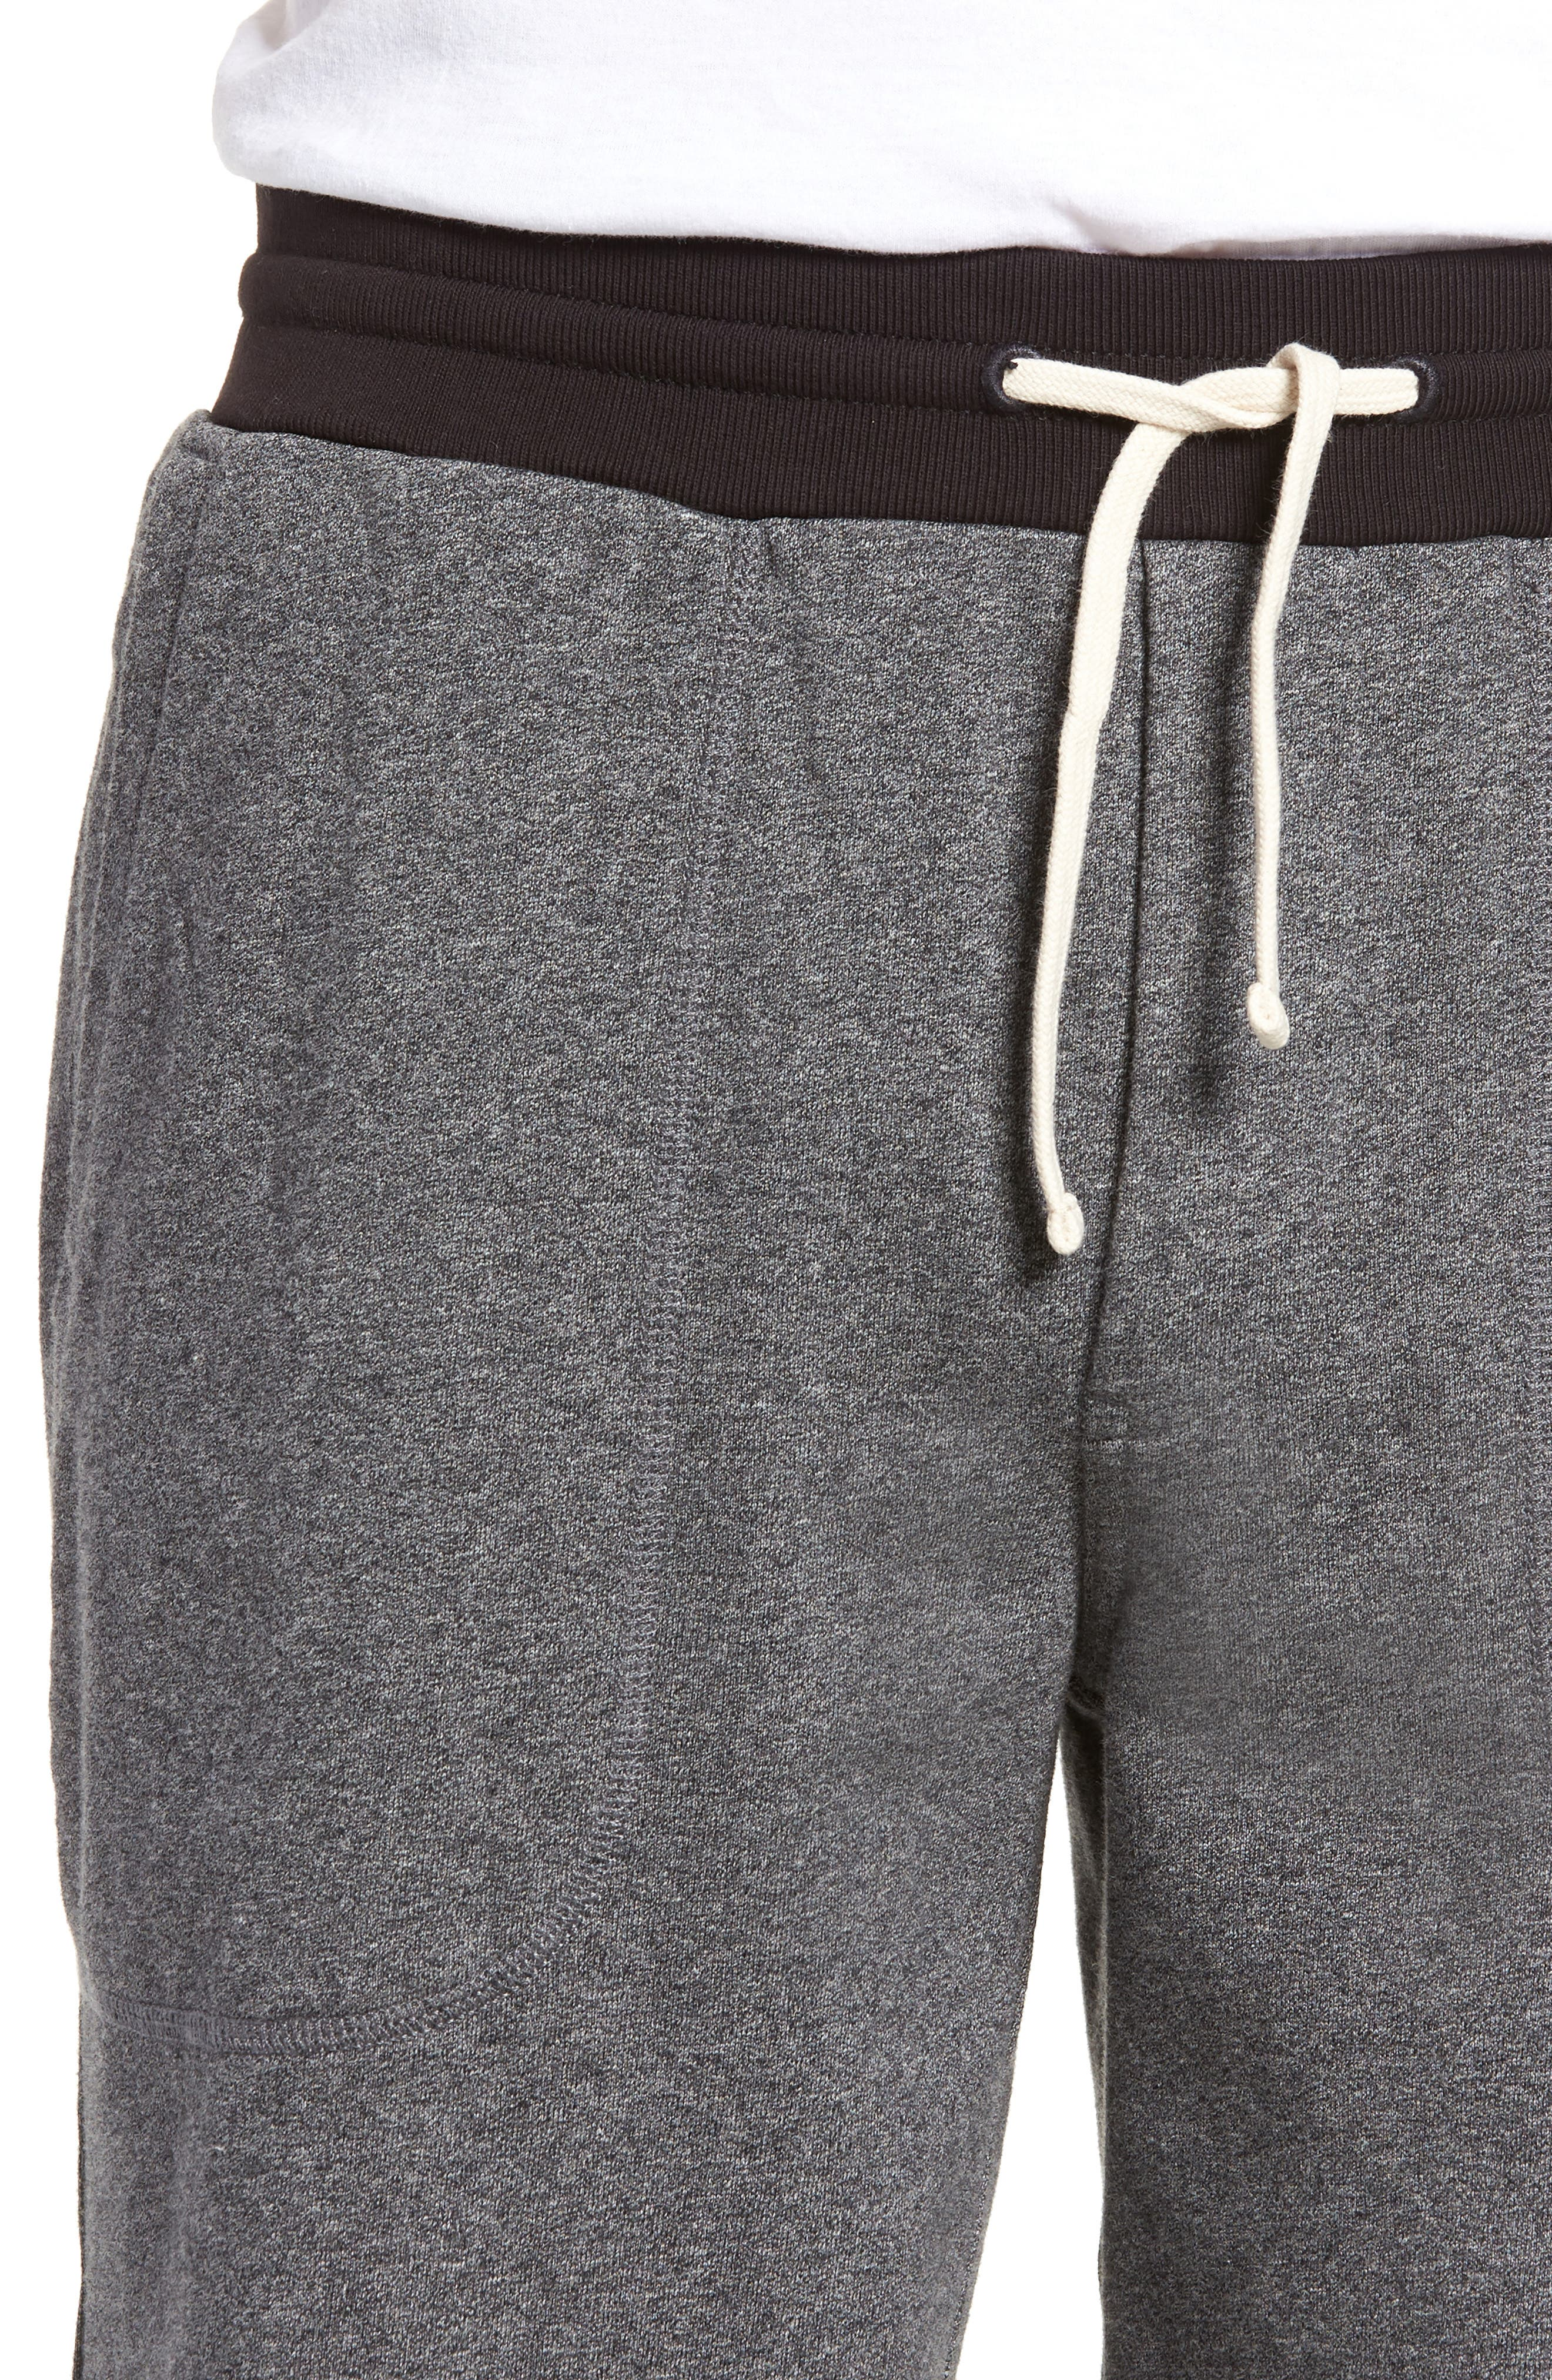 French Terry Shorts,                             Alternate thumbnail 4, color,                             HEATHER ANCHOR